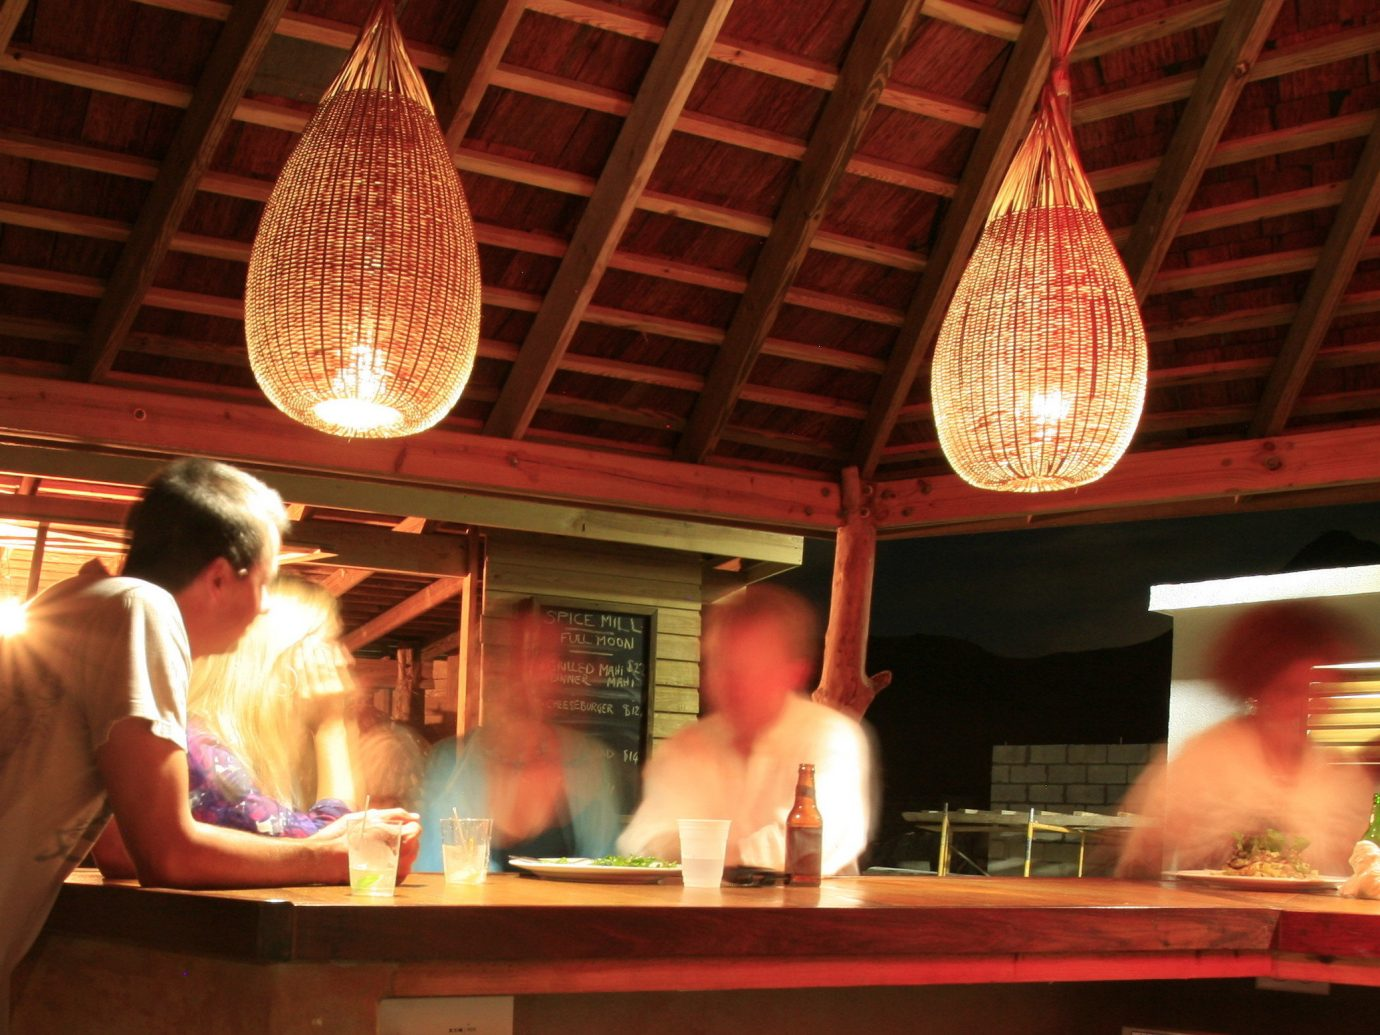 Trip Ideas indoor person restaurant stage Bar meal